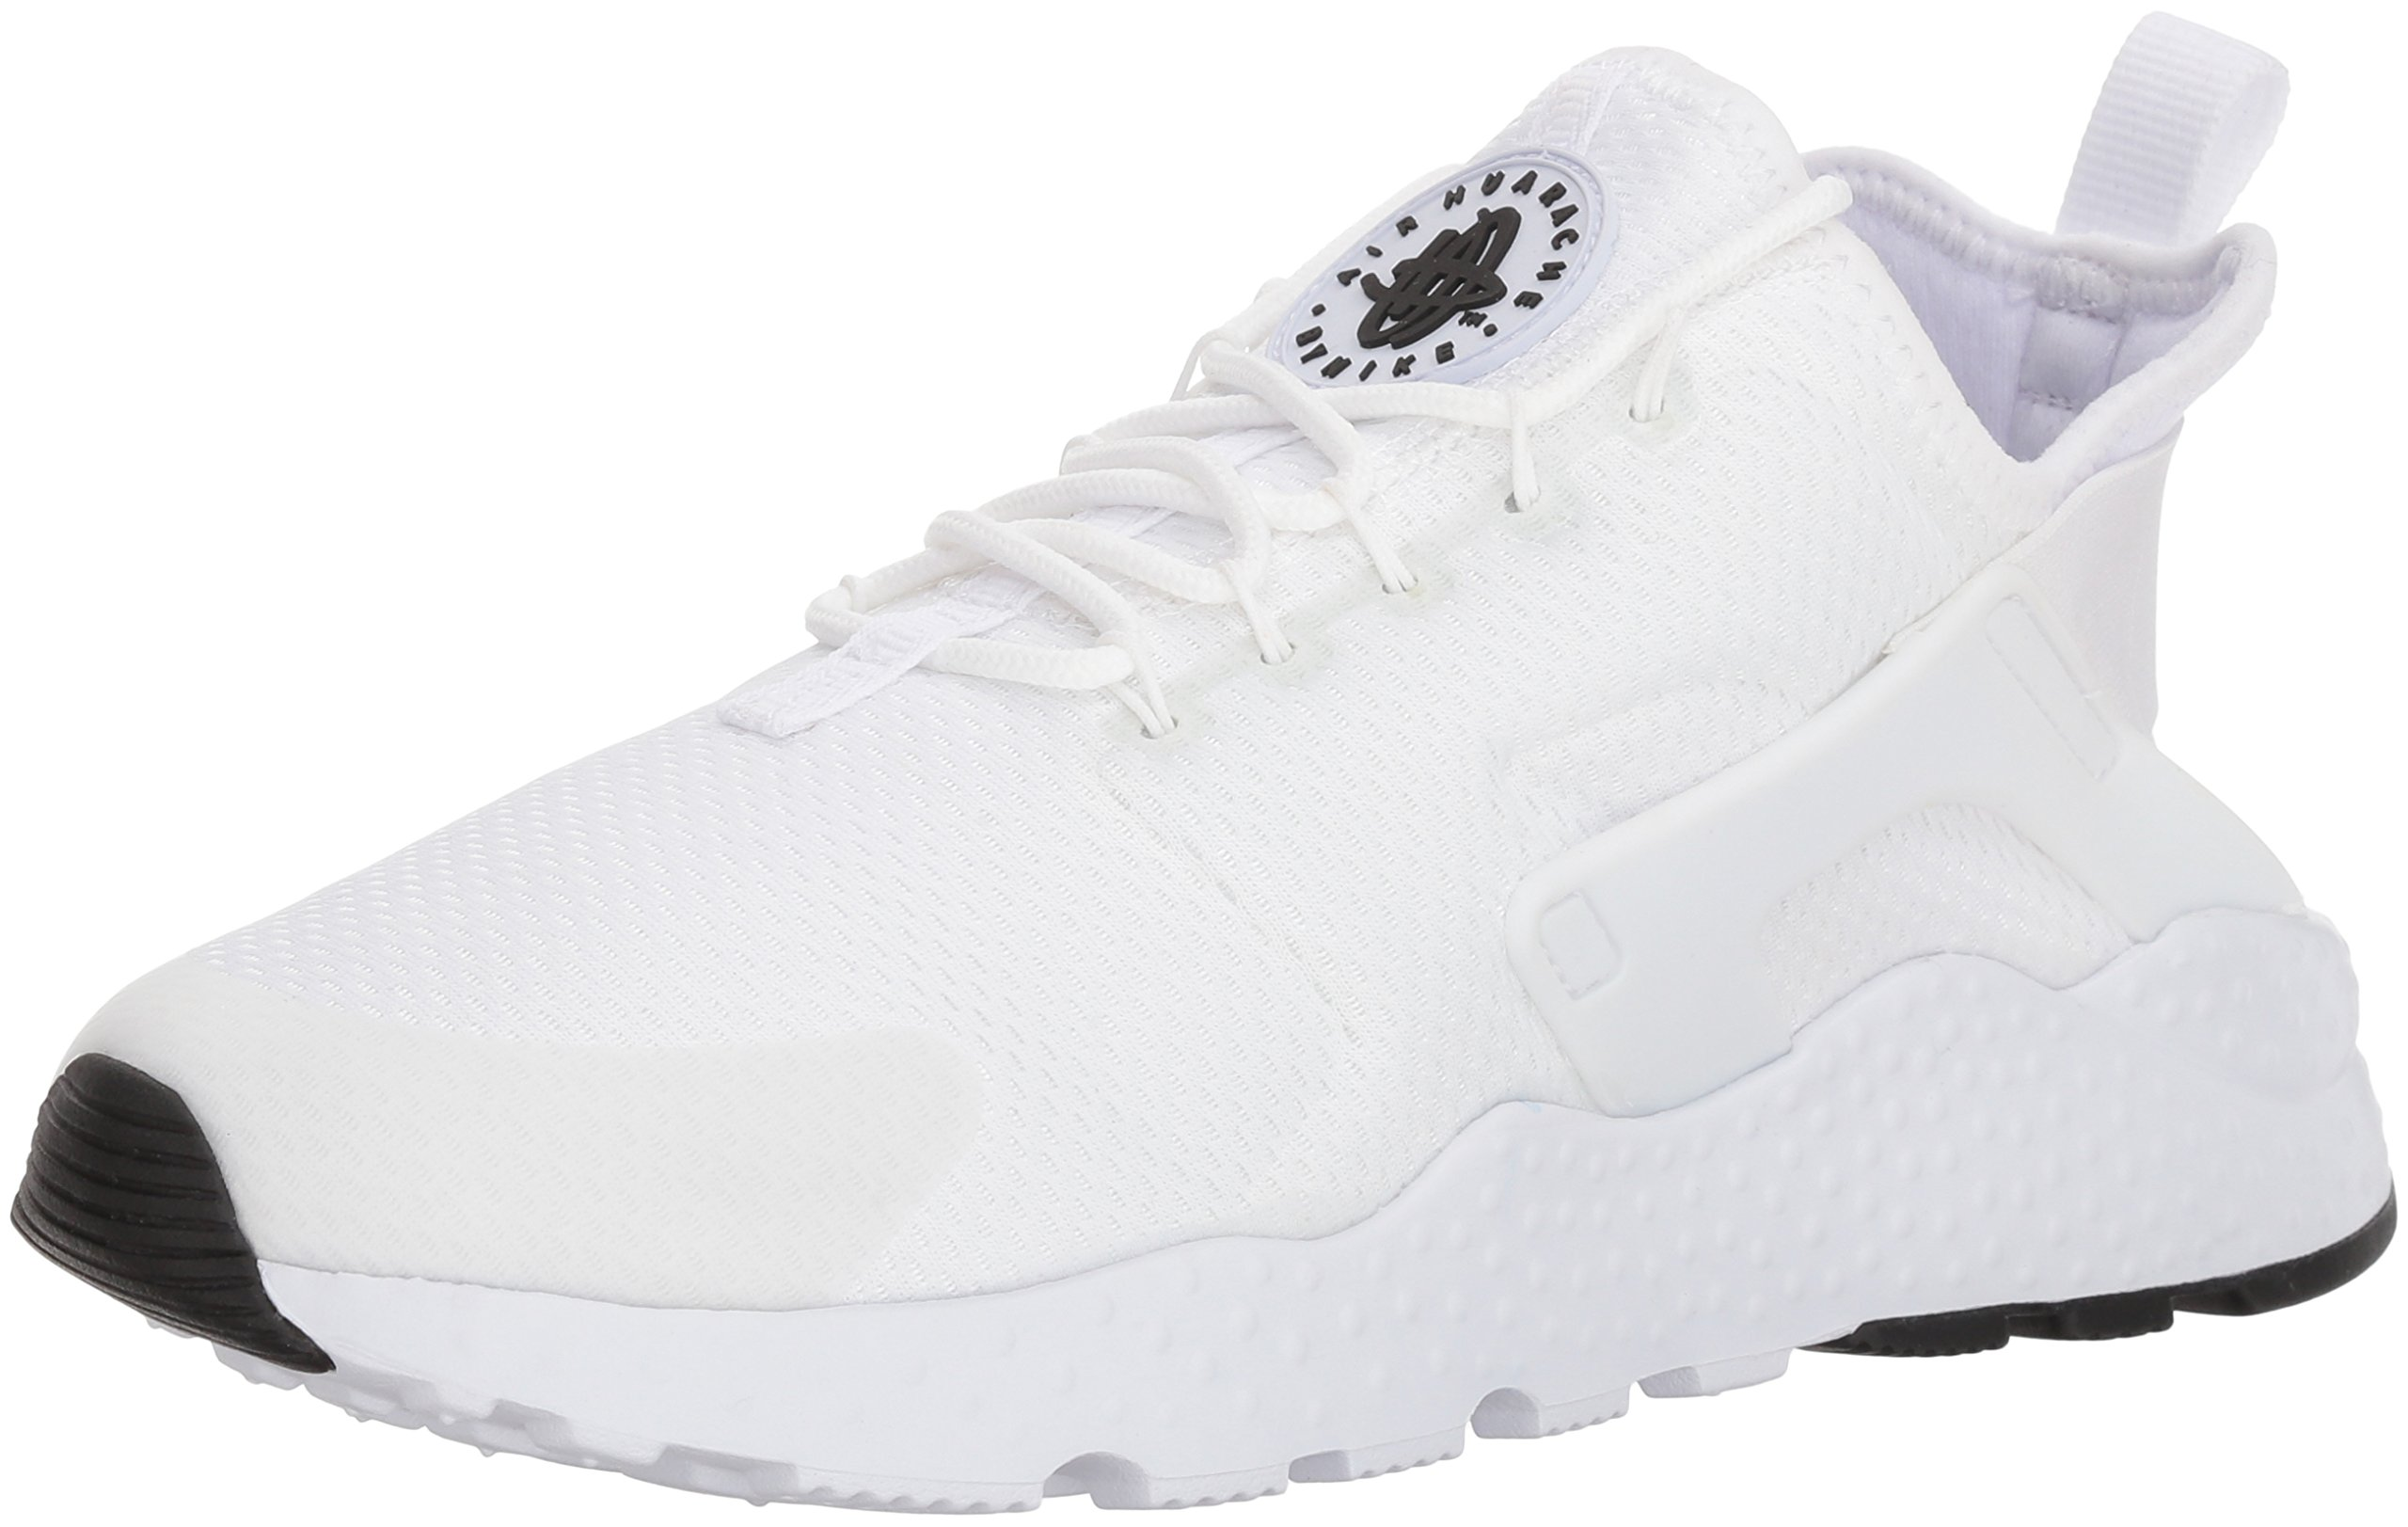 detailed look b8552 3aa77 Galleon - Nike Air Huarache Run Ultra Women s Running Shoes White White- White-Black 819151-102 (12 B(M) US)